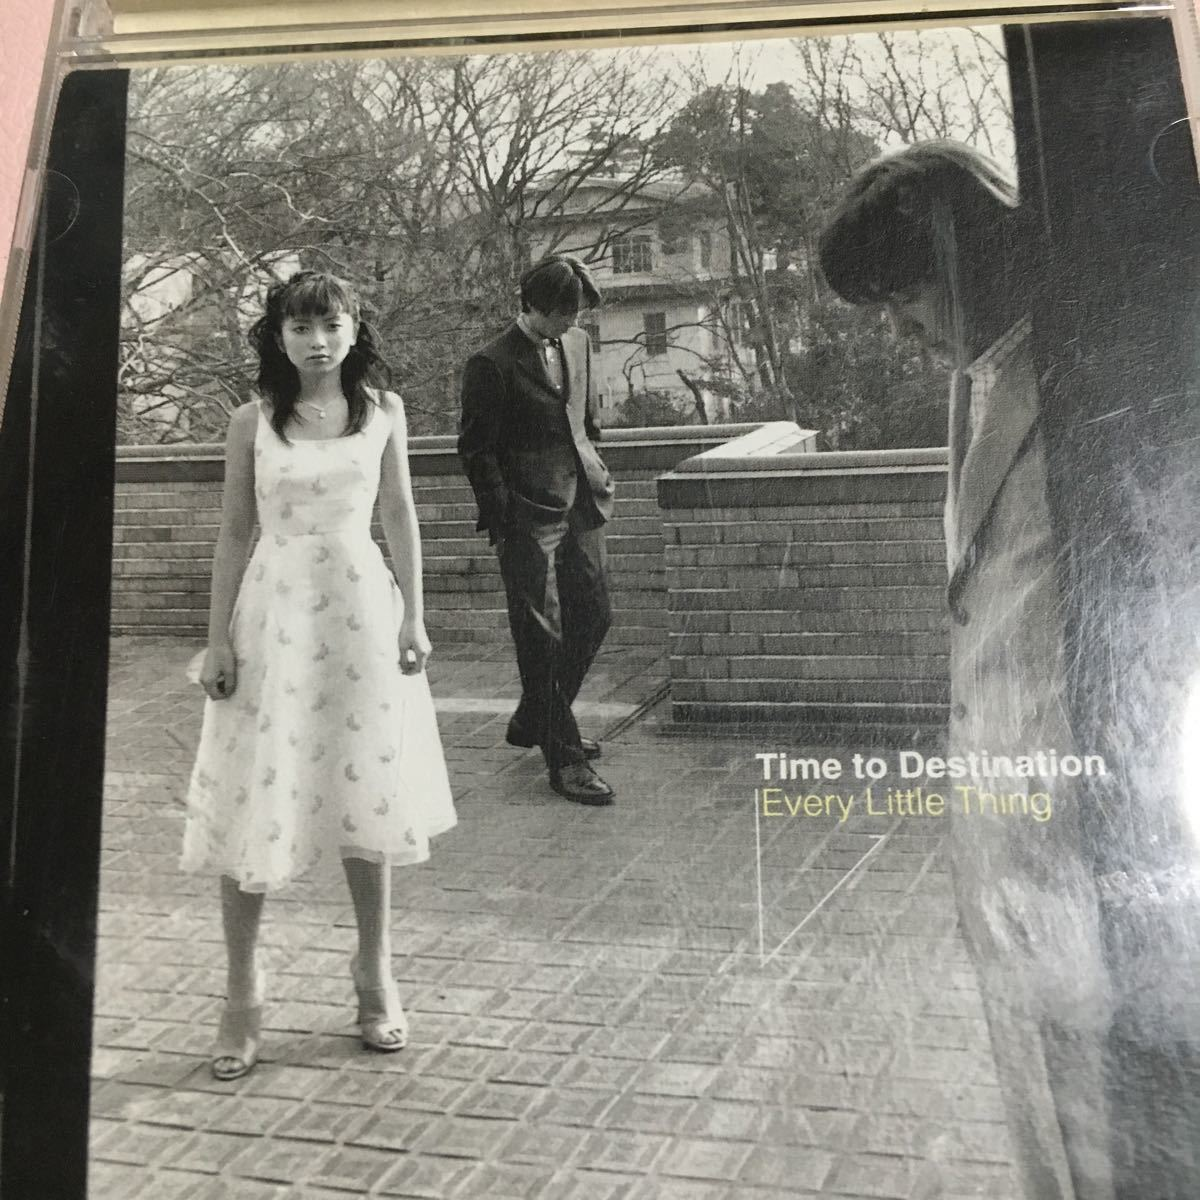 *ELT Every Little Thing アルバム CD Time to Destination*_画像1